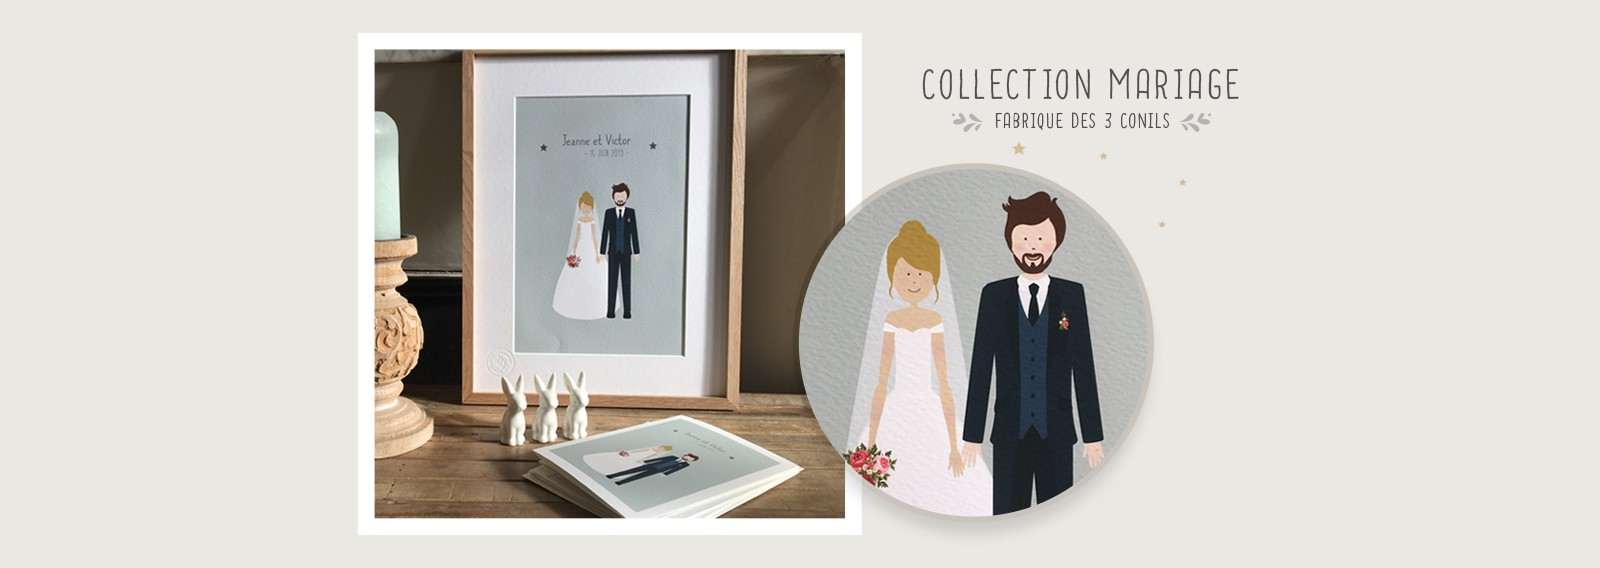 Collection mariage